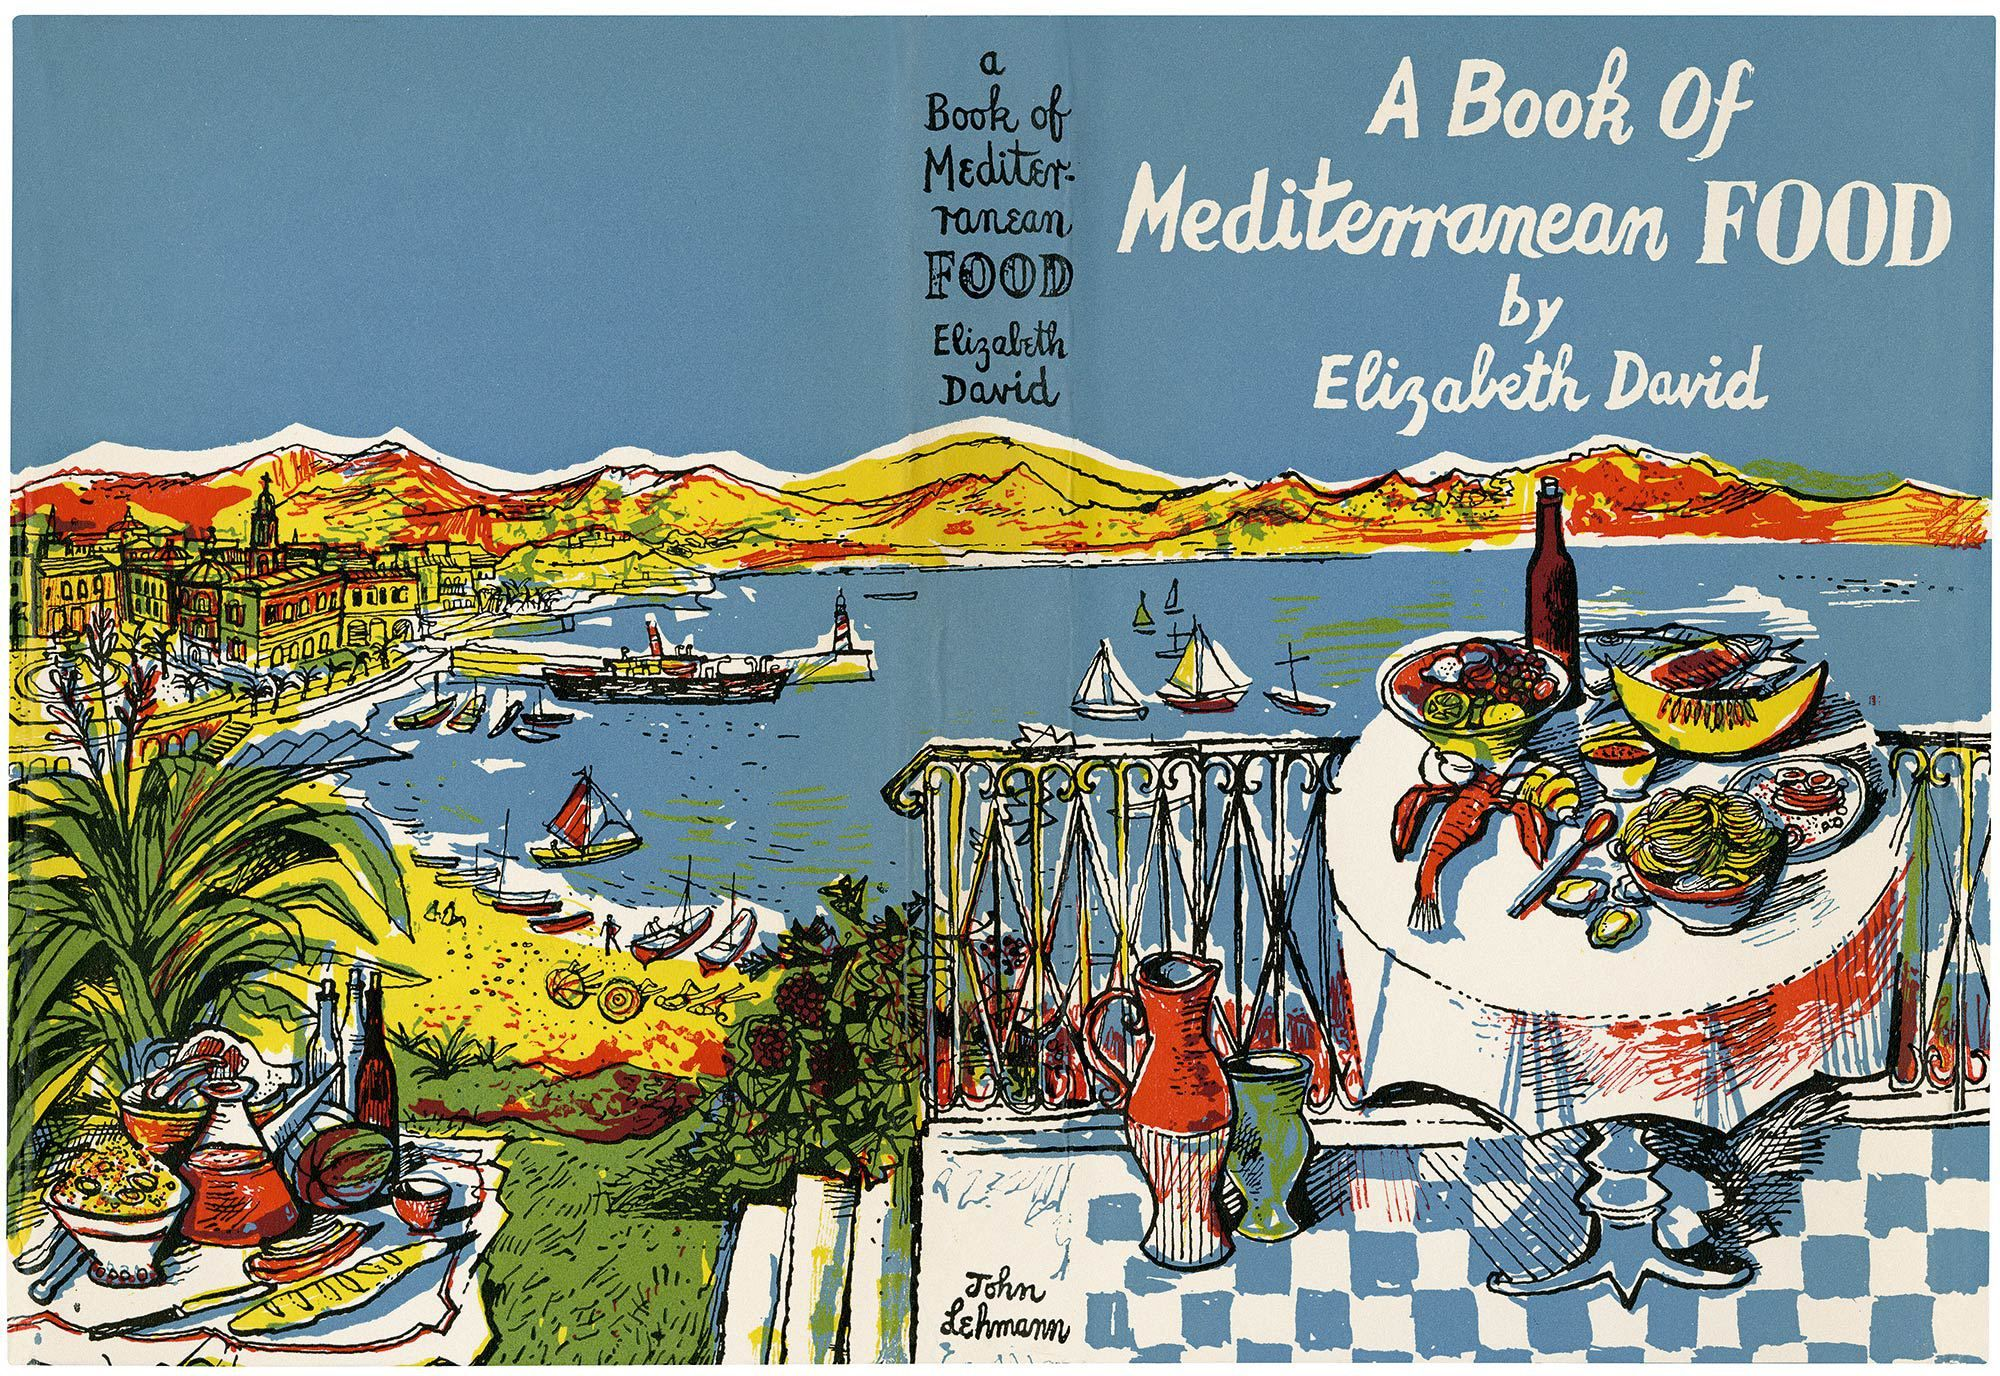 Jacket illustration for Elizabeth David's Book of Mediterranean Food by John Minton (1950)